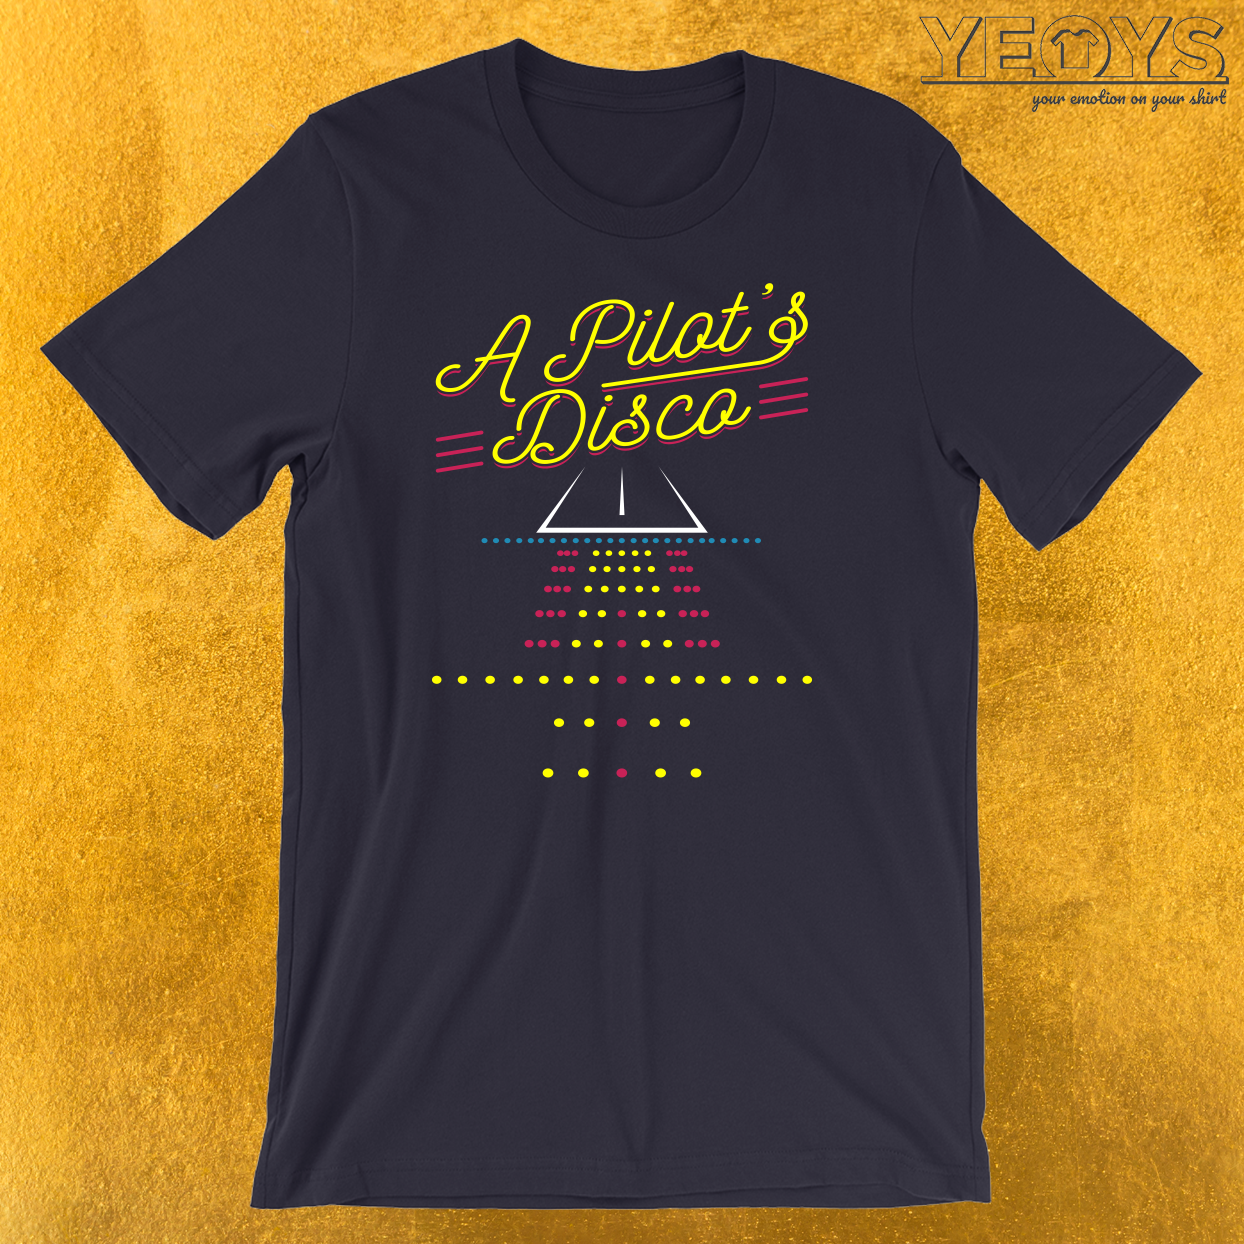 A Pilot's Disco Runway Landing Strip T-Shirt